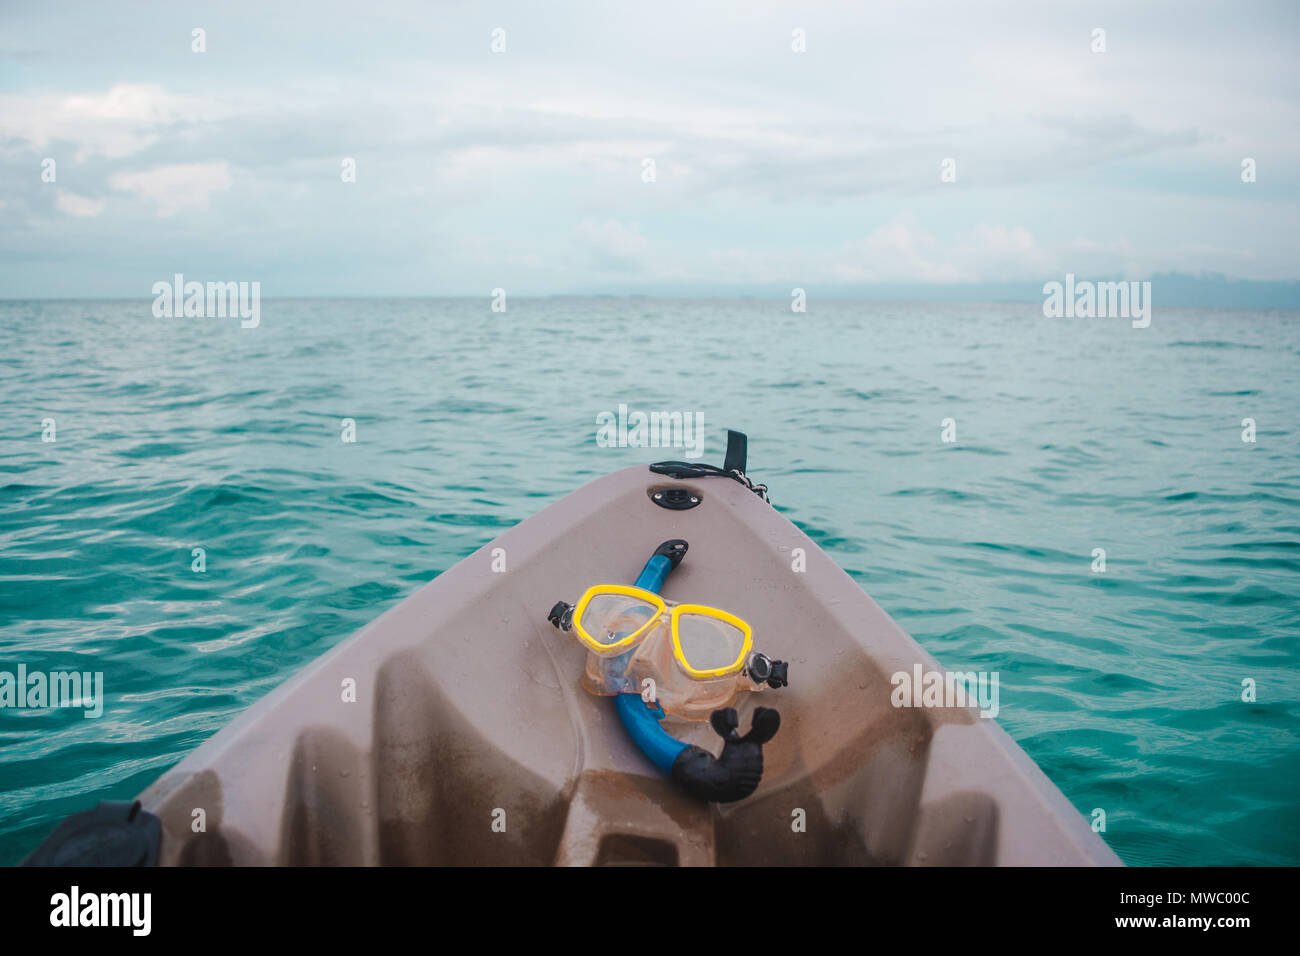 Blue snorkel and yellow goggles on the front of a brown plastic kayak in the turquoise water of the Caribbean Sea off the San Blas Islands, Panama - Stock Image